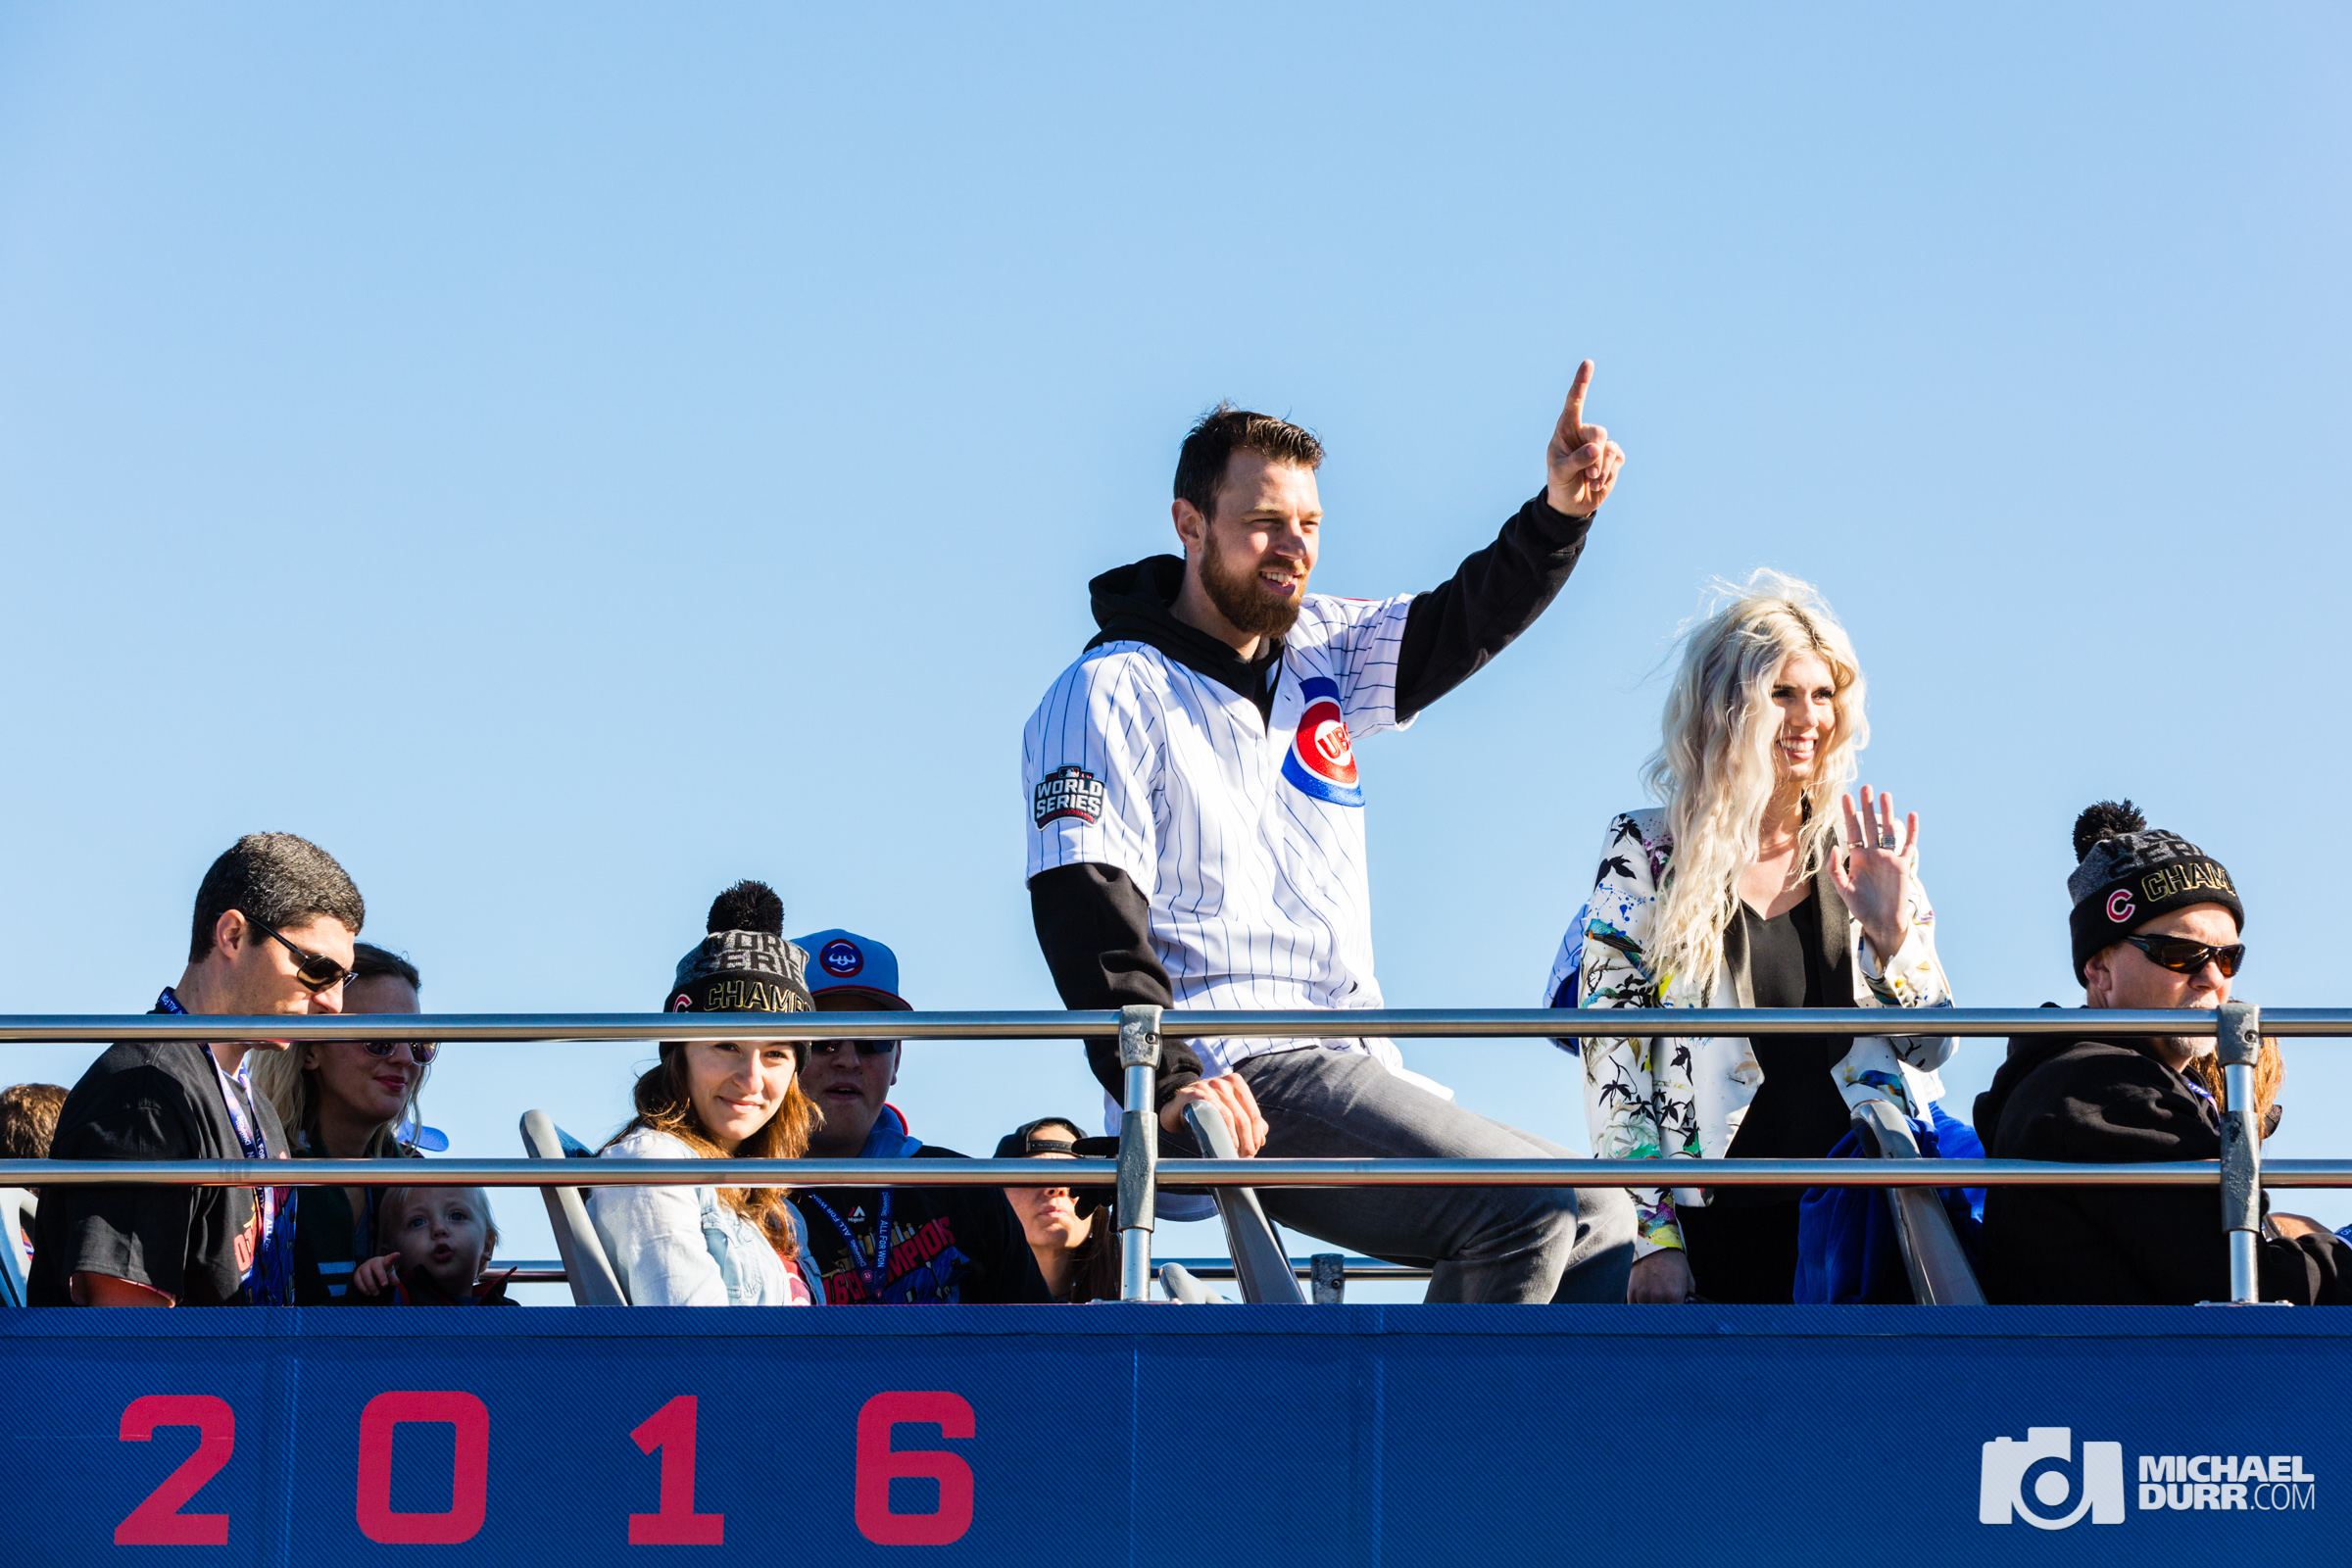 2016WorldSeries_0829.jpg